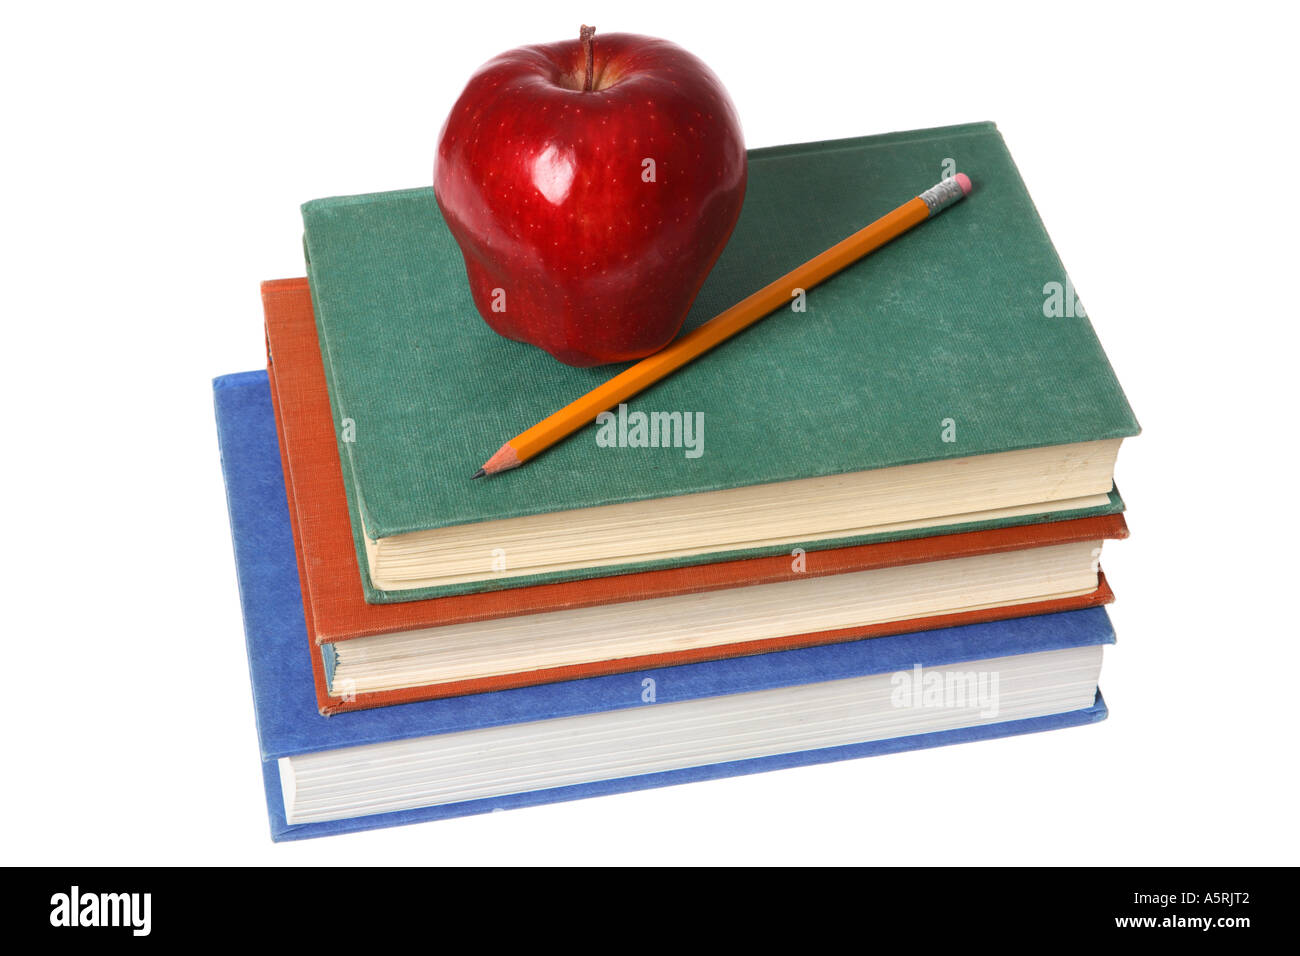 school books red apple and pencil stock photo 6499585 alamy